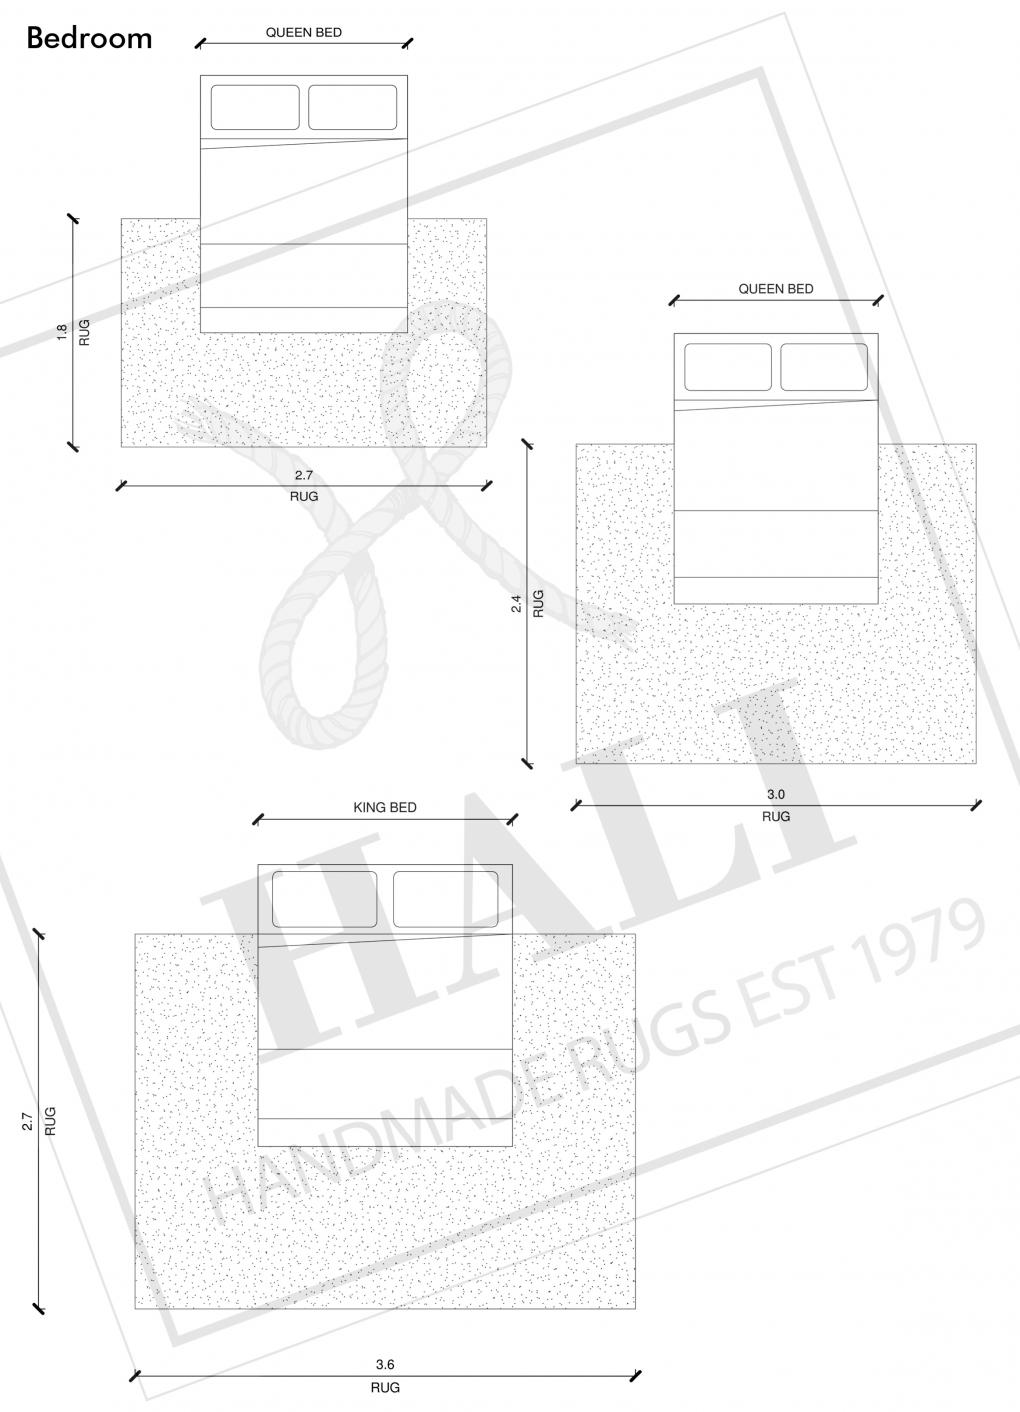 Bedroom Layouts Watermarked